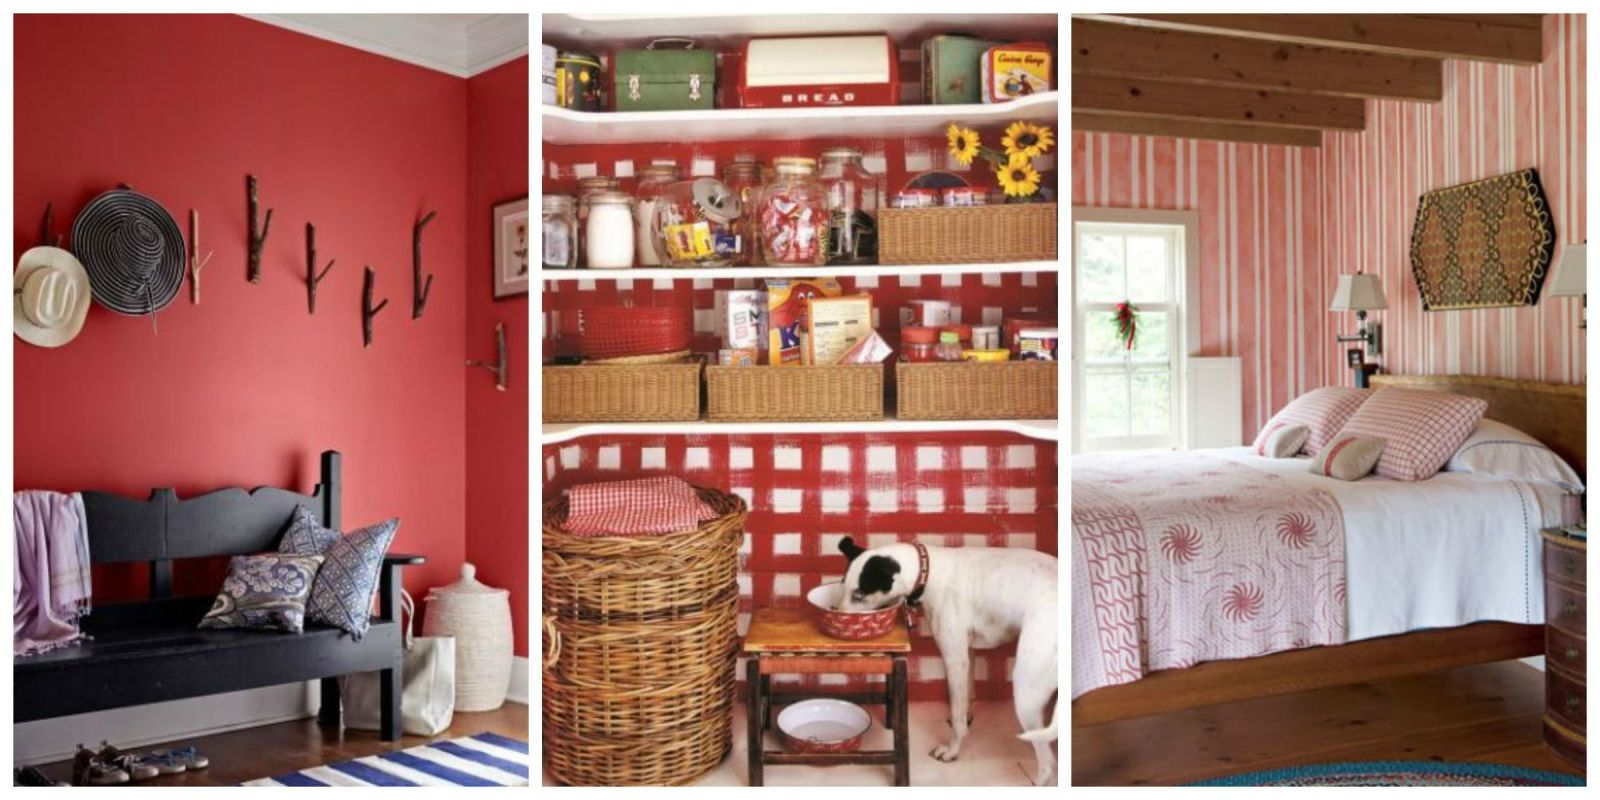 Bedroom Decorating Ideas Red decorating with red - ideas for red rooms and home decor